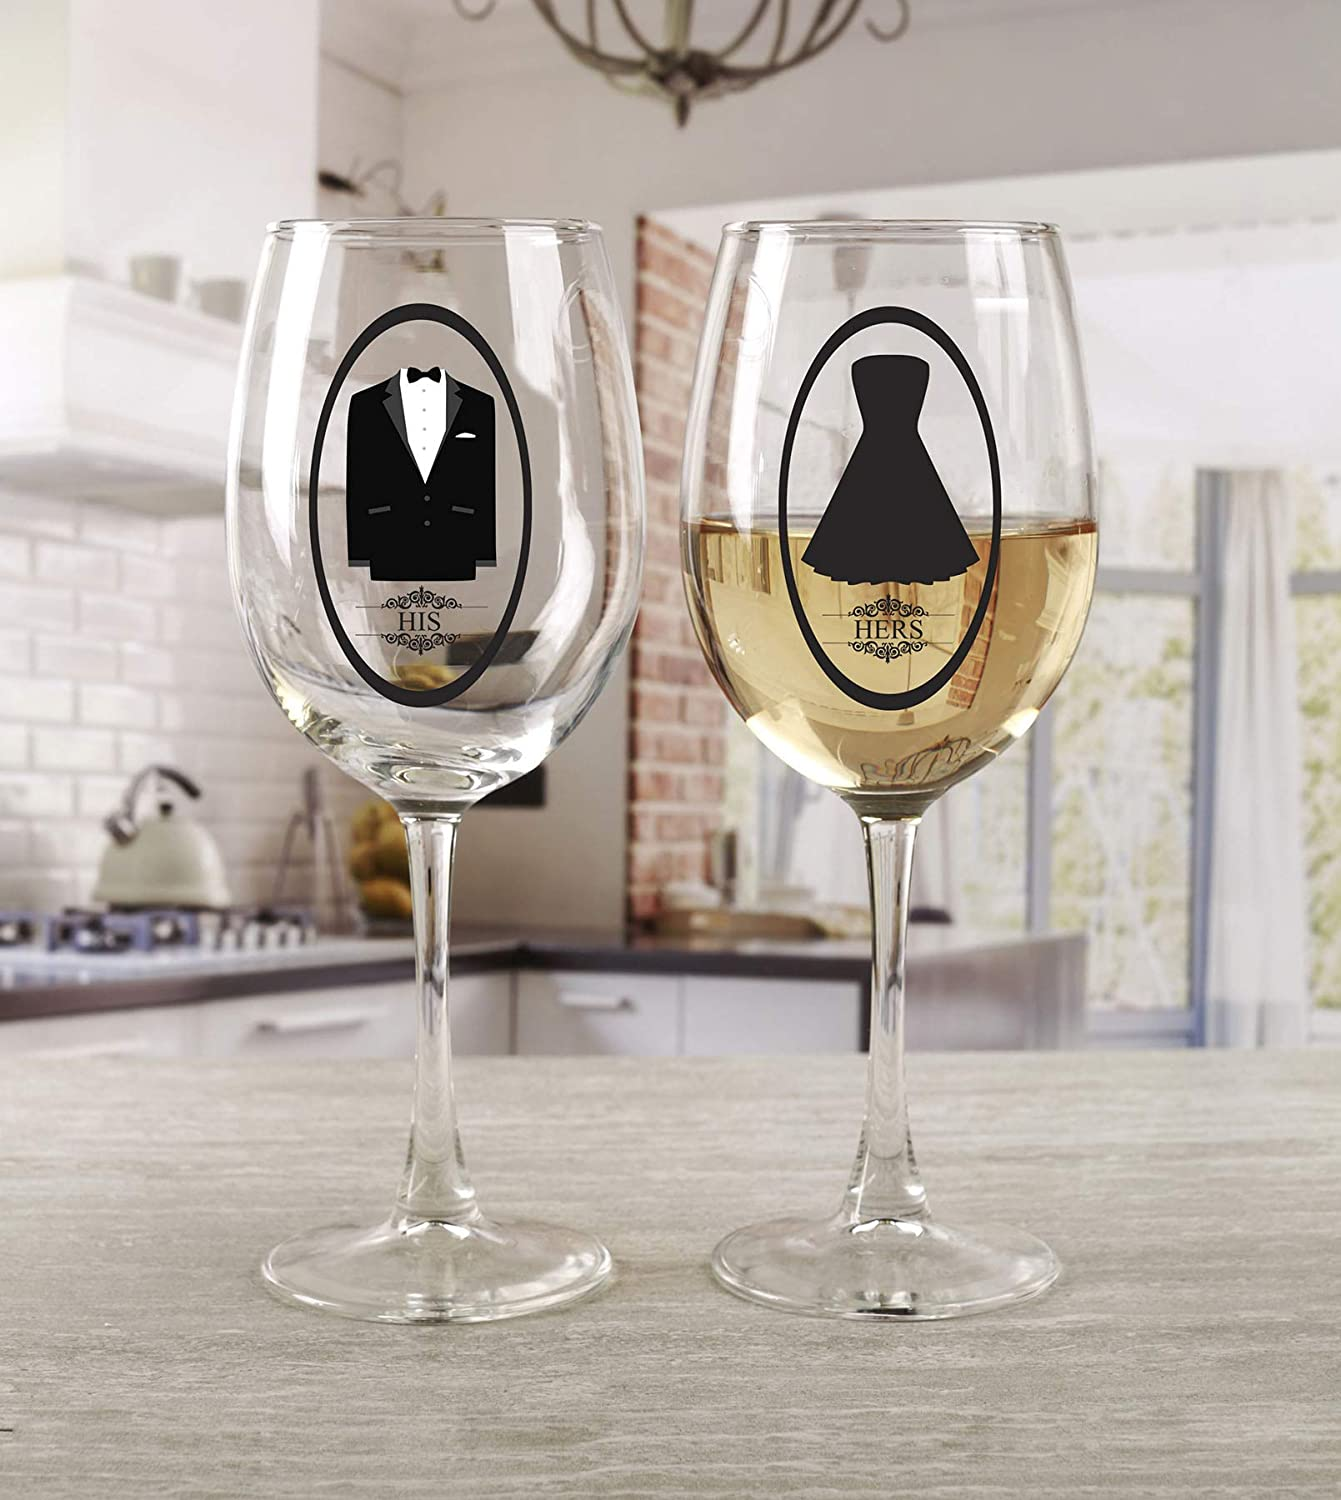 Circleware 77069 Fun Saying Wine Glasses, Set of 2, Party Entertainment Dining Beverage Drinking Glassware Cups for Water, Liquor, Whiskey, Beer, Juice and Farmhouse Decor Gifts 15 oz His and Hers